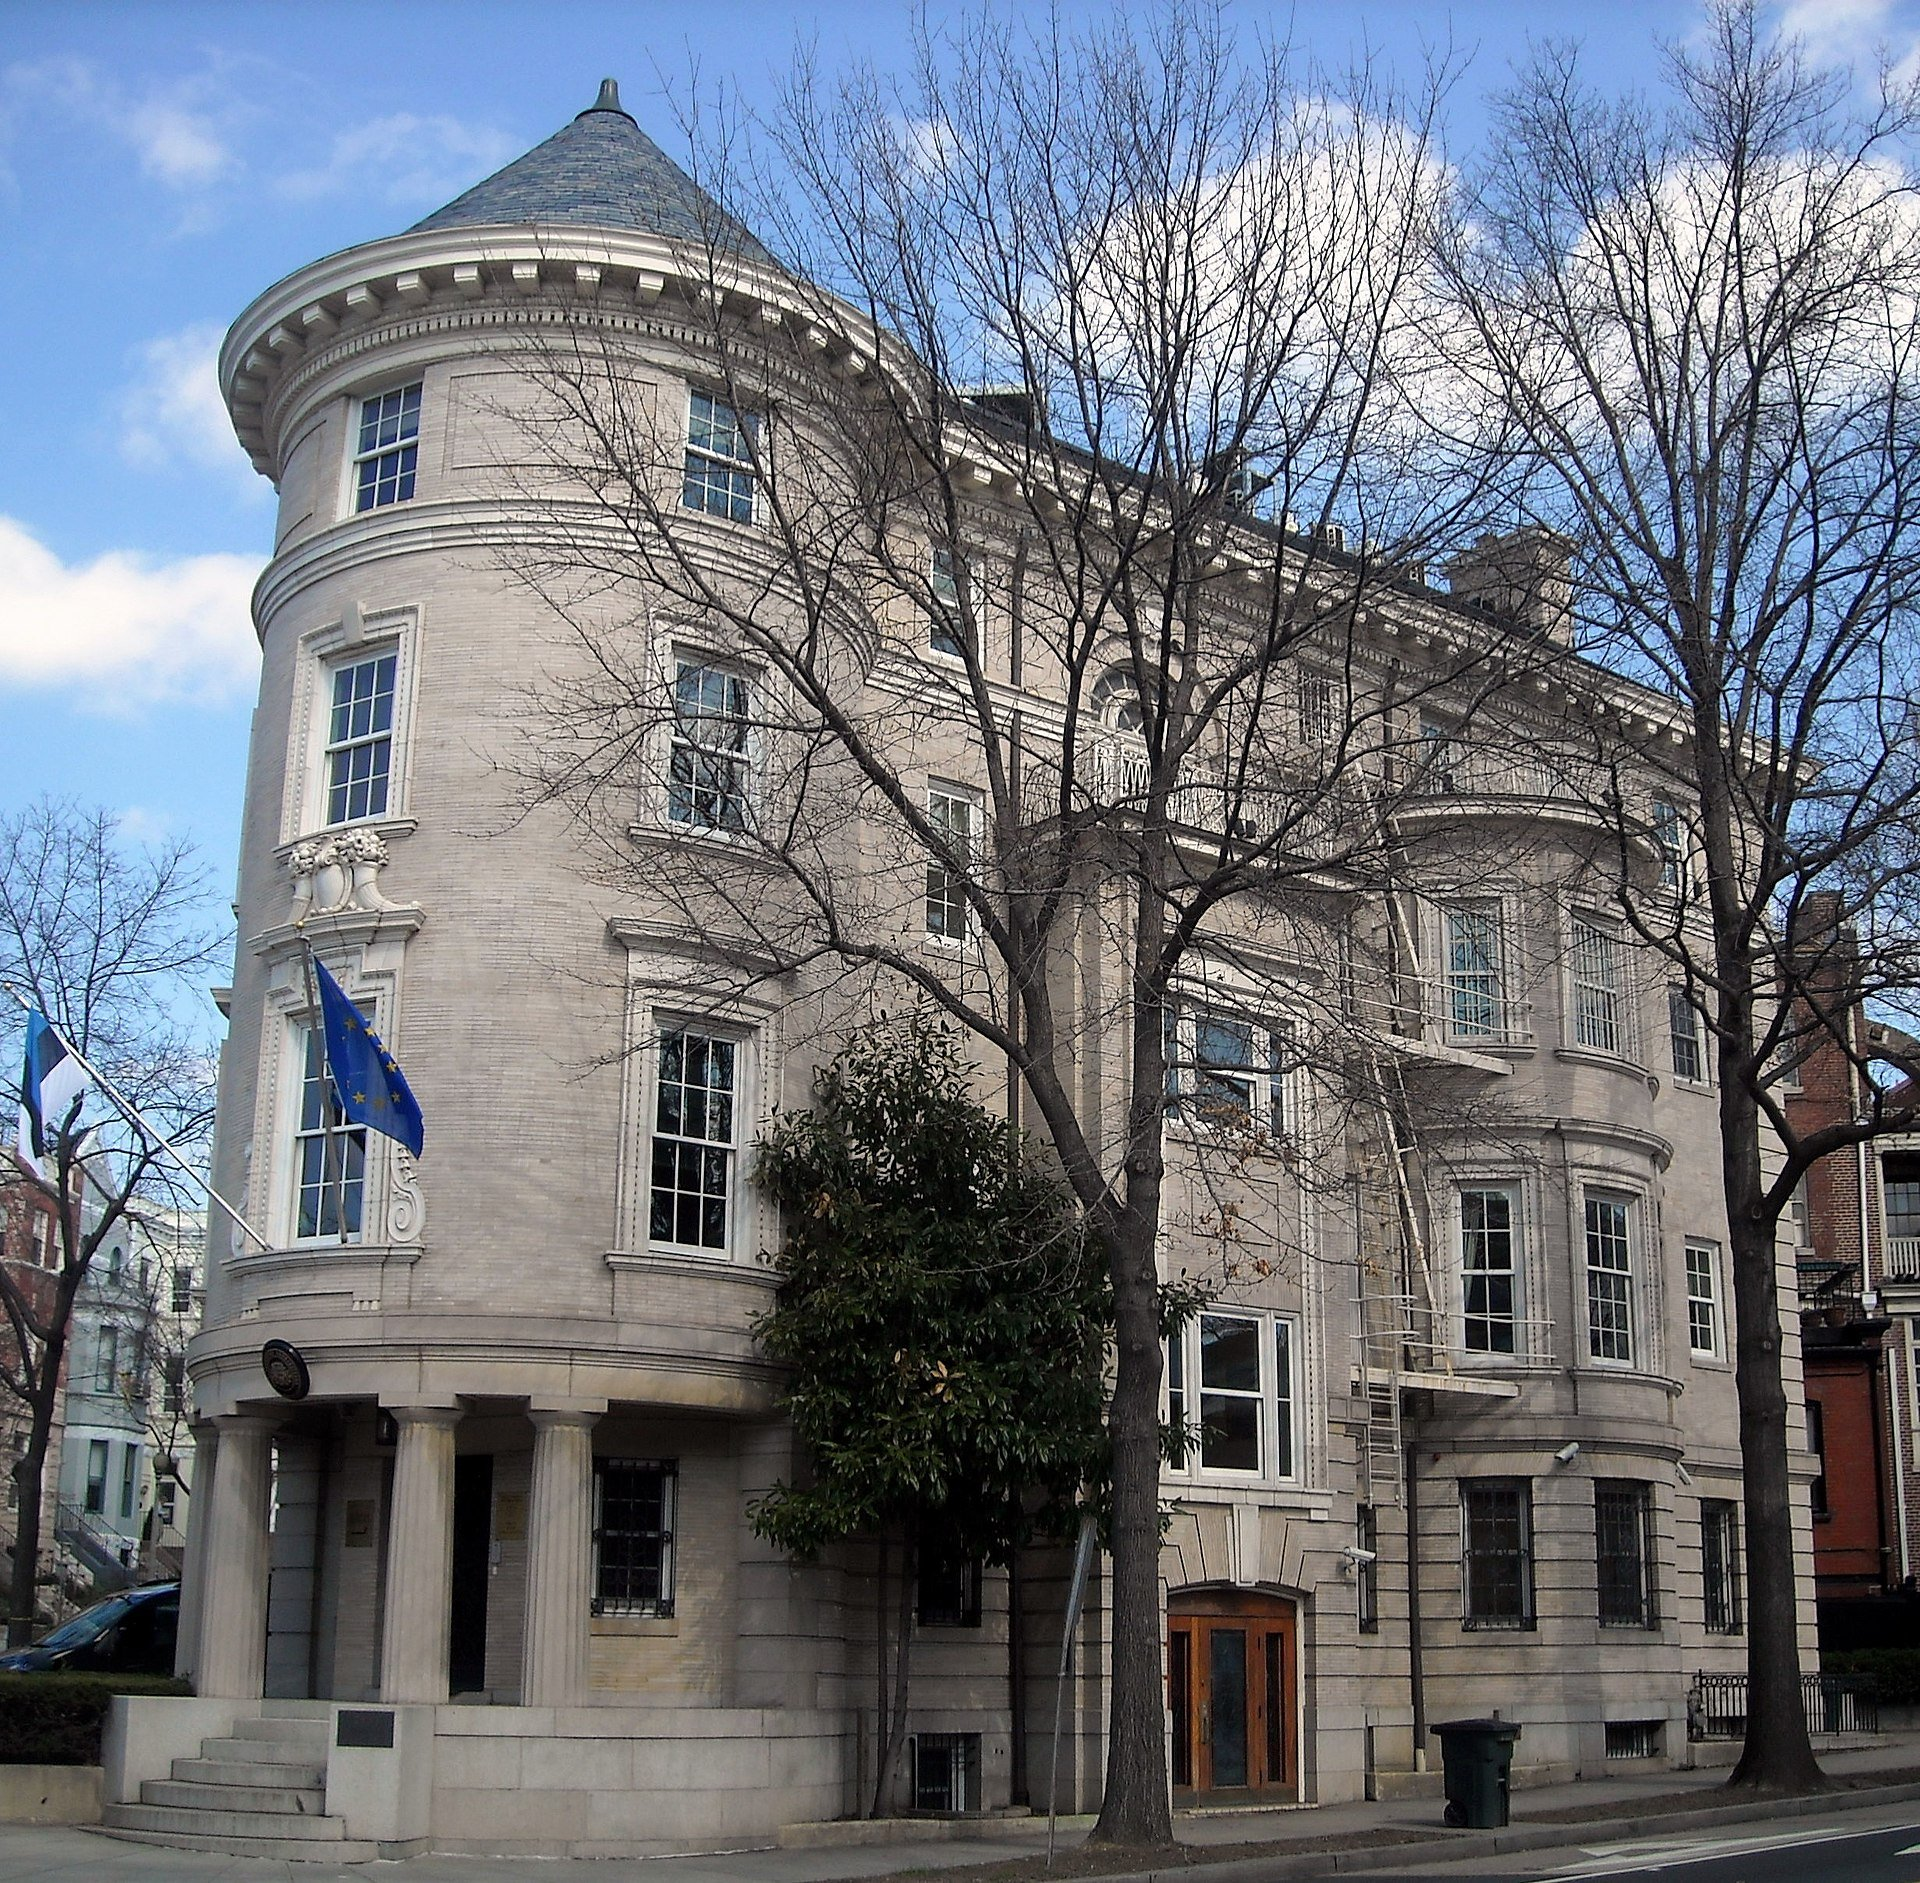 The Embassy of Estonia was damaged in a fire in 2001, especially by water and smoke. Thanks to around 80 firefighters and the hard work of those who restored the building, the beautiful chancery remains steadfast on Embassy Row. Wikimedia Commons.